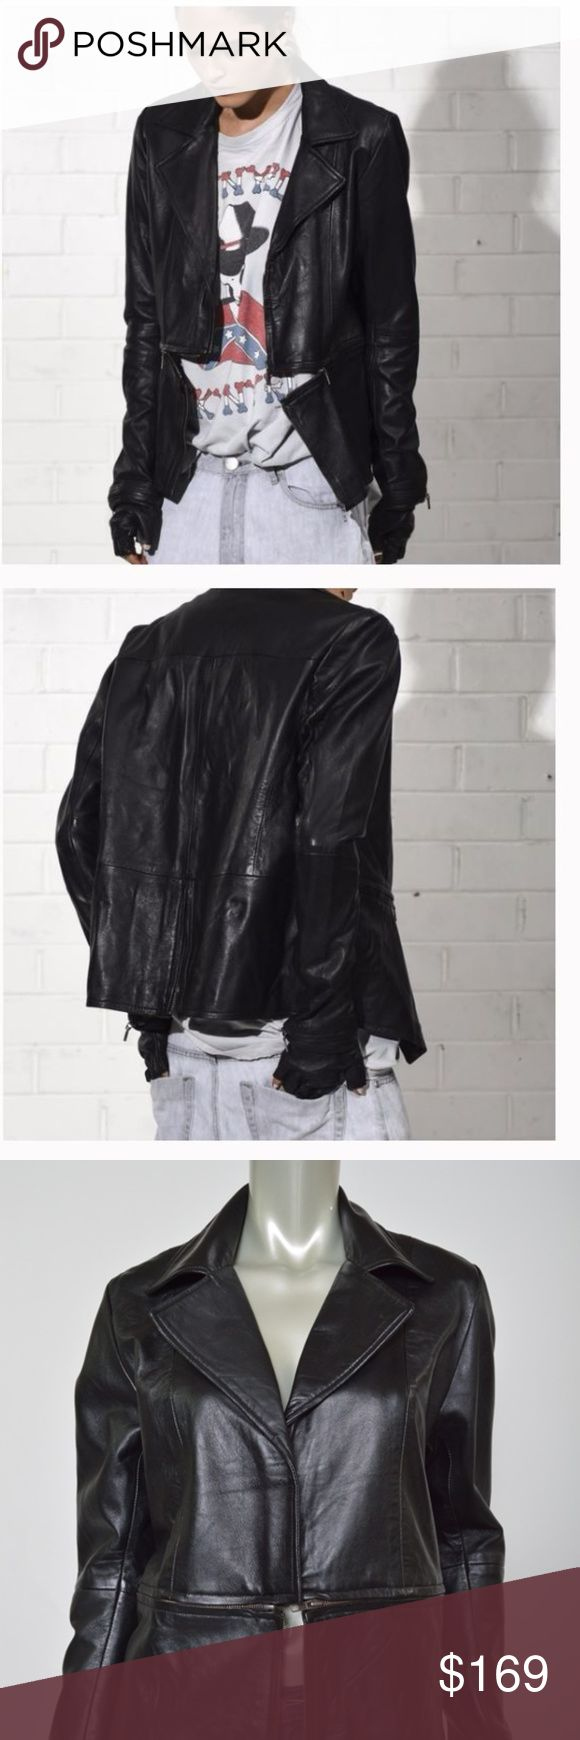 One Teaspoon Leather Jacket Small Knights Watch S One Teaspoon Leather Jacket Small Knights Watch Rocker Moto Women's Butter Soft Total length is 24 inches.  Bust is 46 inches, unstretched. Excellent condition One Teaspoon Jackets & Coats